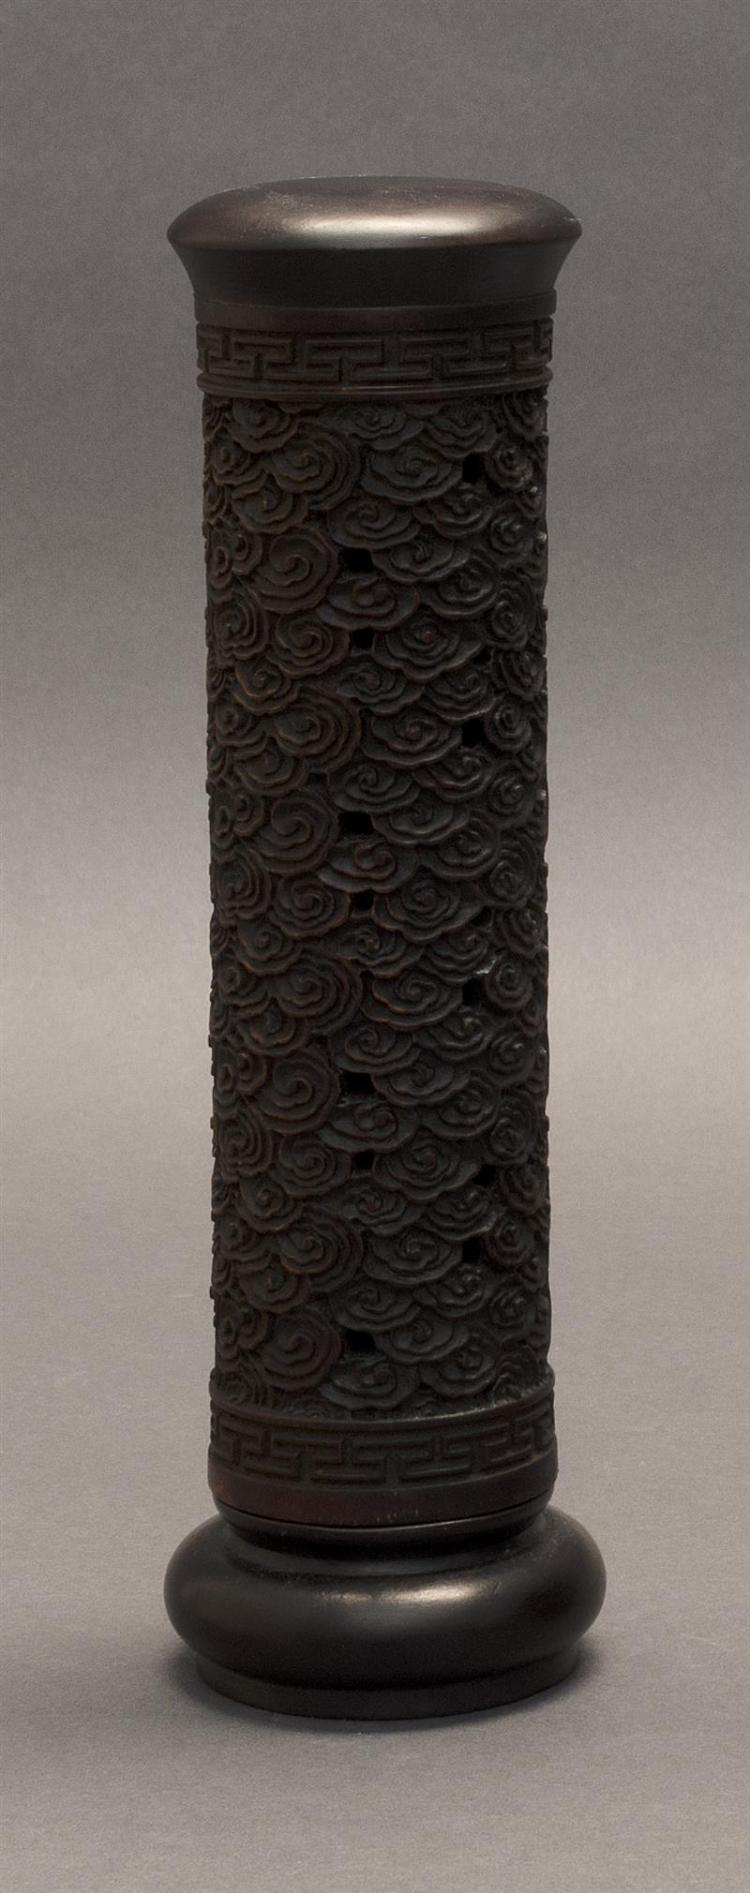 WOOD INCENSE HOLDER In cylindrical form. With carved ryui design about the body and key fret banding at top and base. Height 8.5